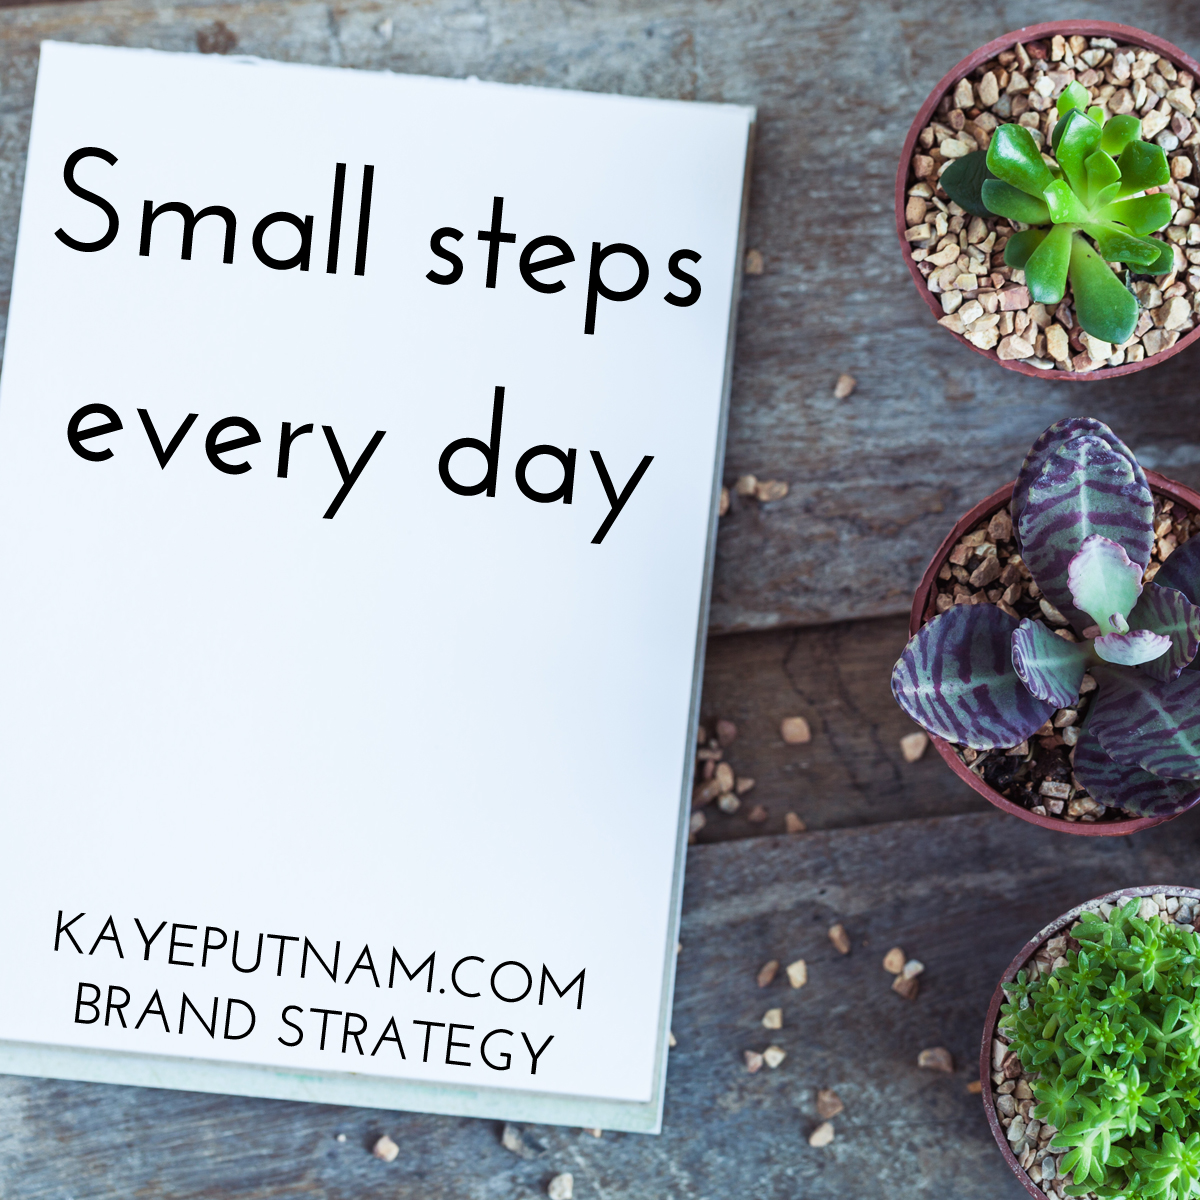 Small steps every day. #InDemandBrand